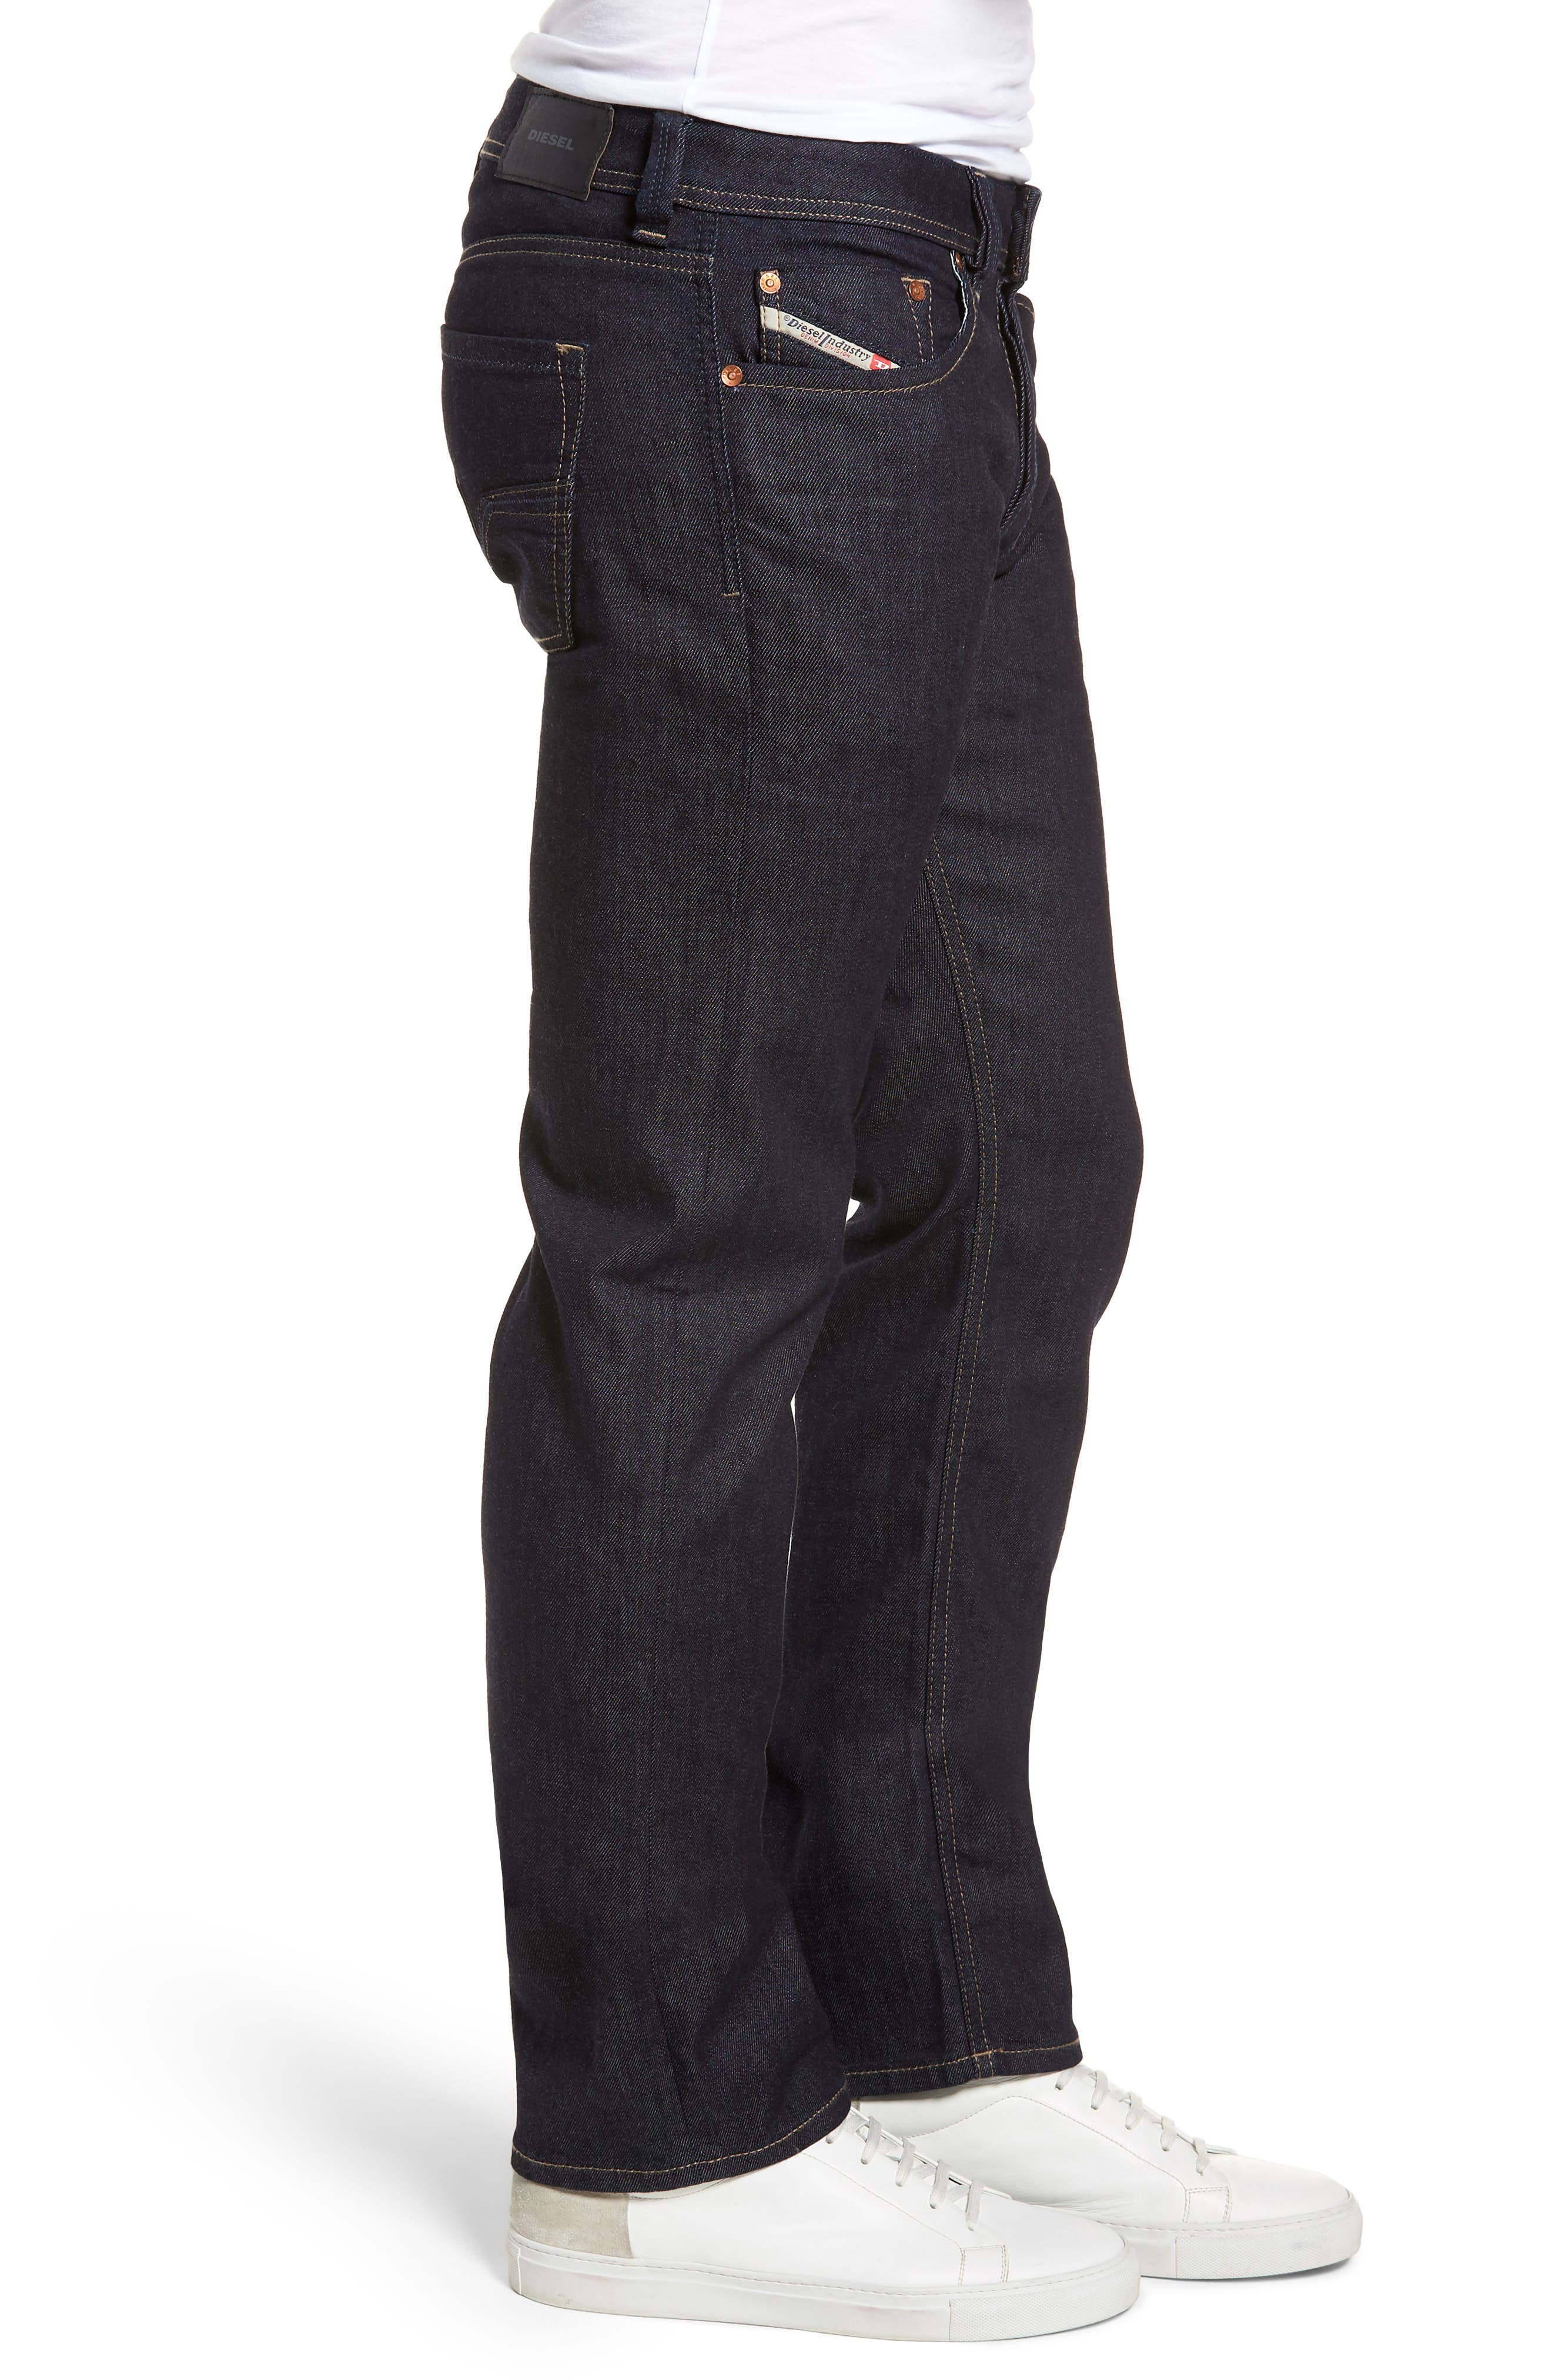 Larkee Relaxed Fit Jeans,                             Alternate thumbnail 3, color,                             Blue